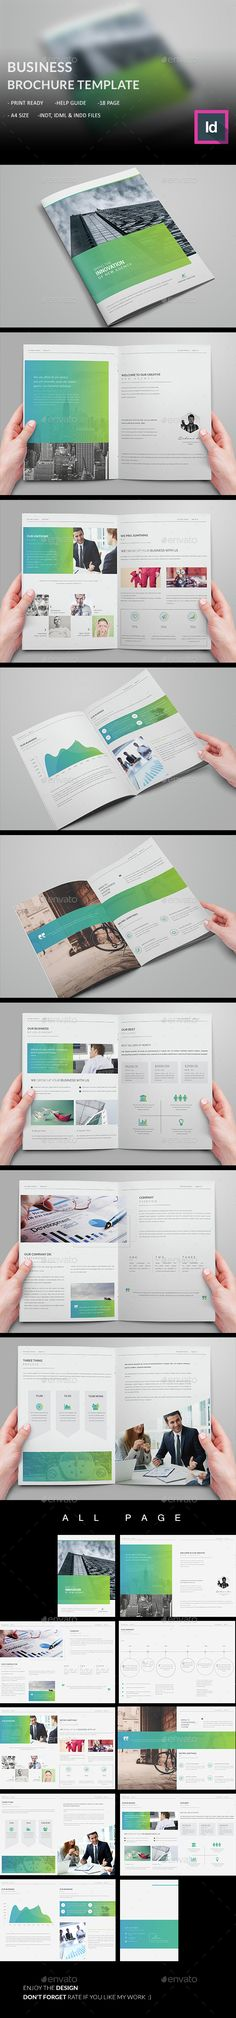 Business Brochure Template InDesign INDD. Download here: http://graphicriver.net/item/business-brochure-template/14824582?ref=ksioks